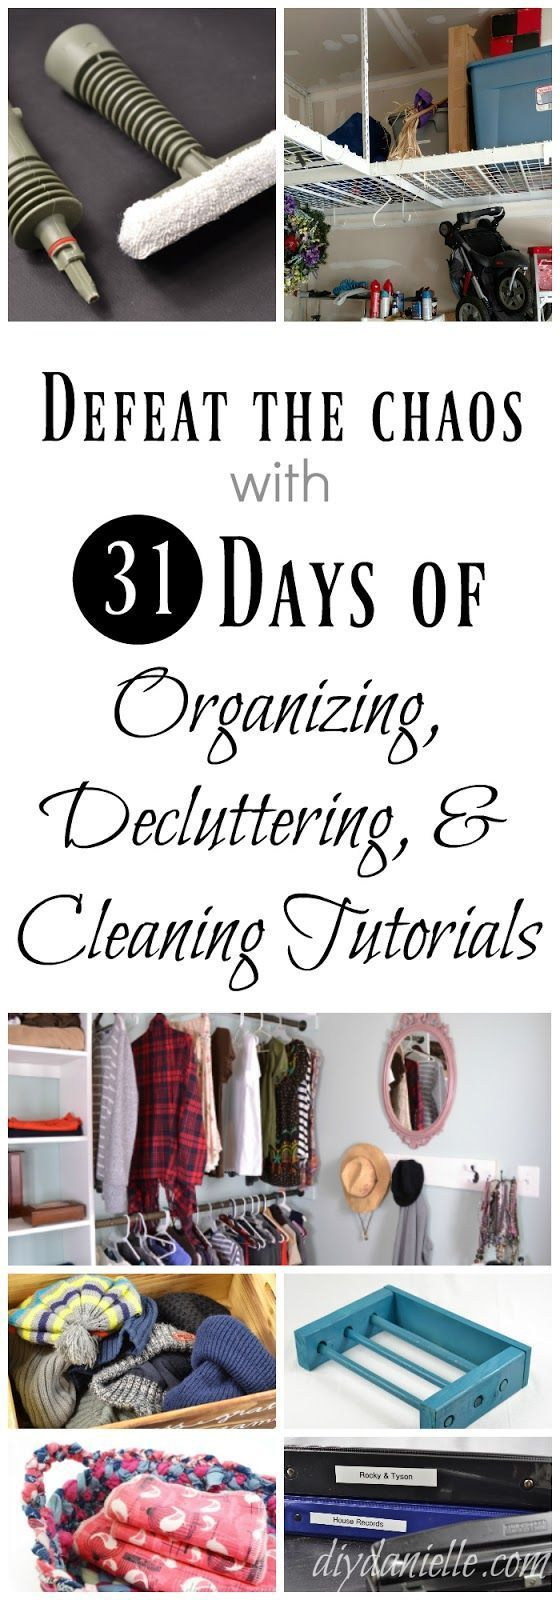 31 Days of Decluttering, Organizing, and Cleaning Tips and DIY Projects to Help Defeat the Chaos